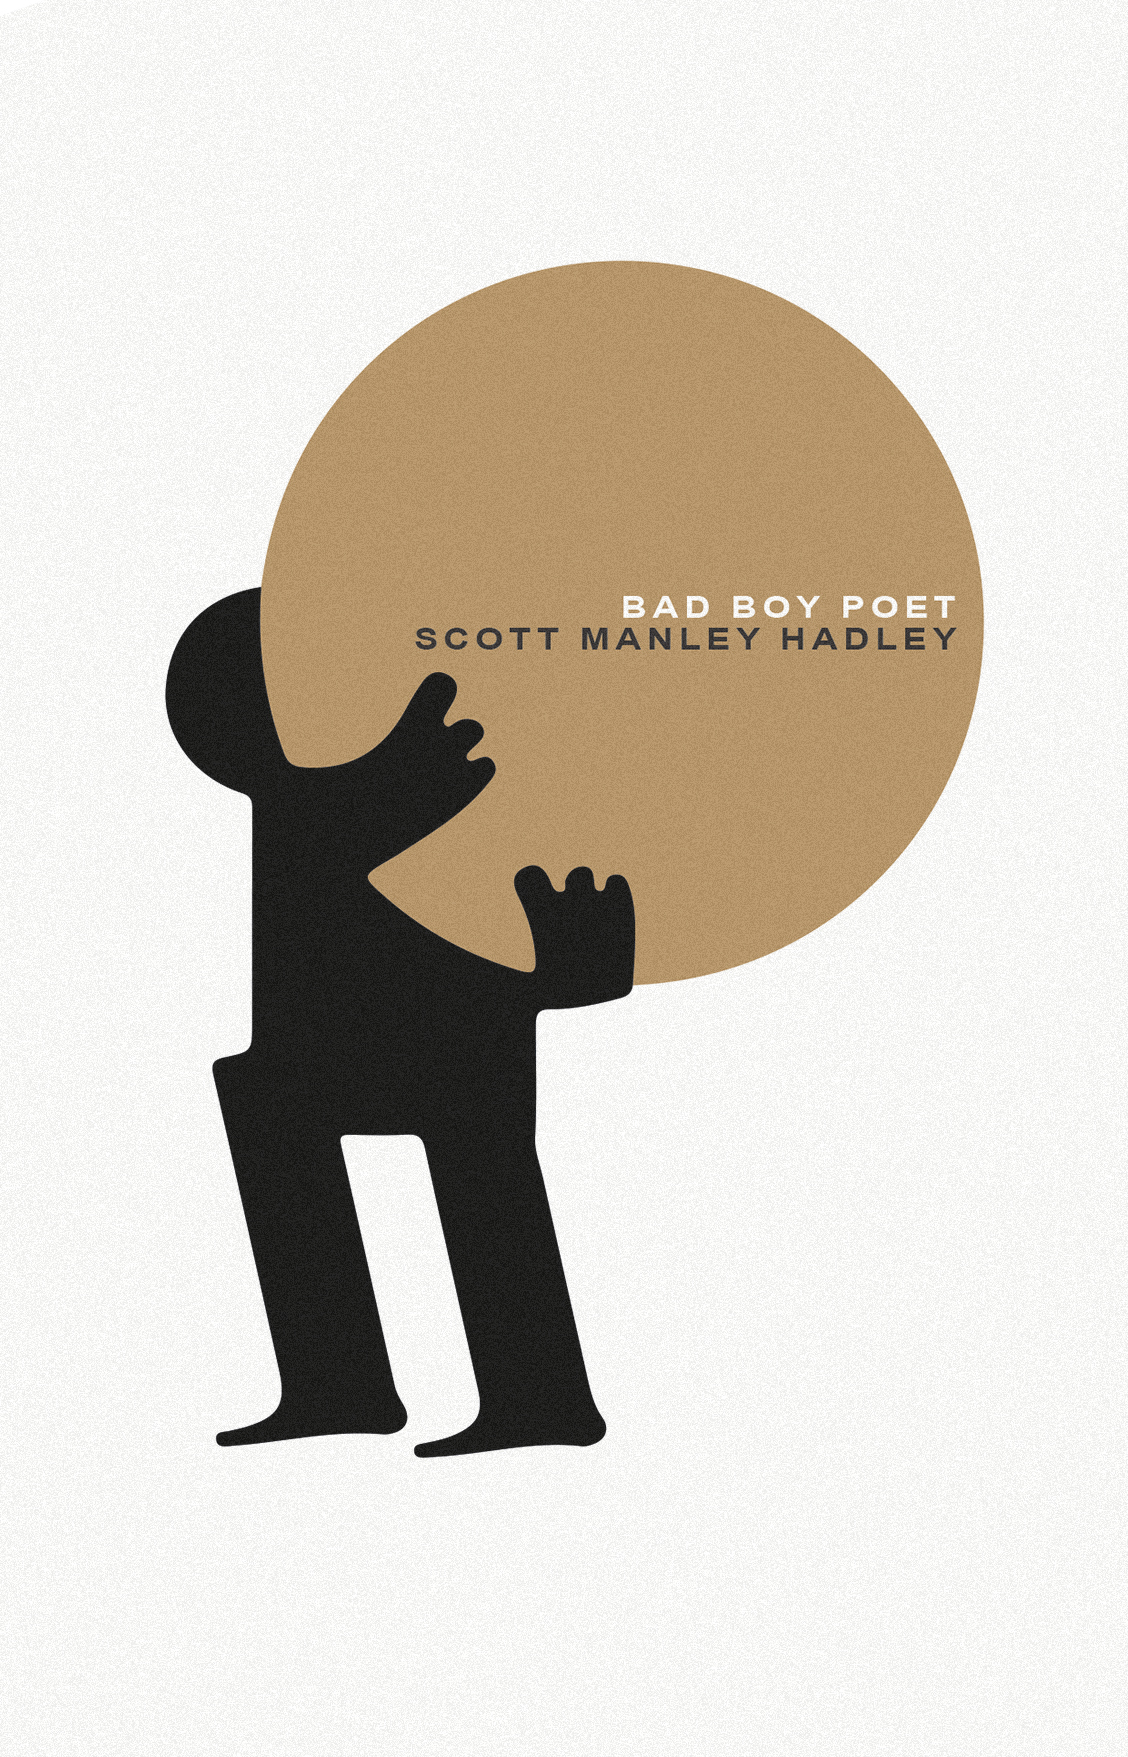 REVIEW: Scott Manley Hadley Reviews Bad Boy Poet by Scott Manley Hadley